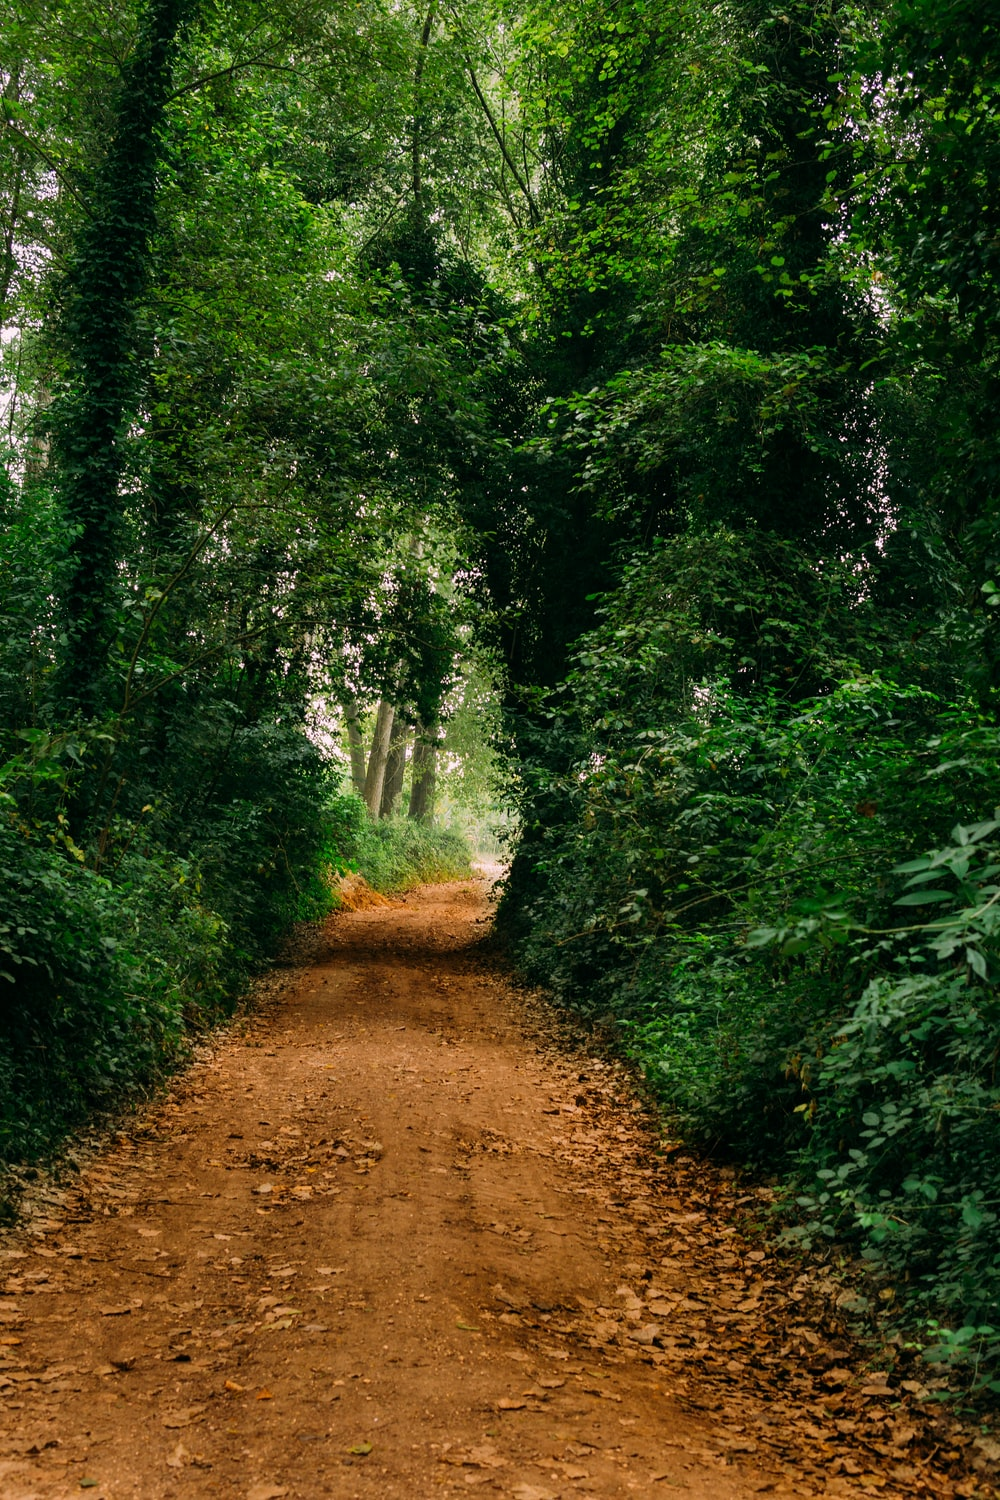 dirt road surrounded with trees